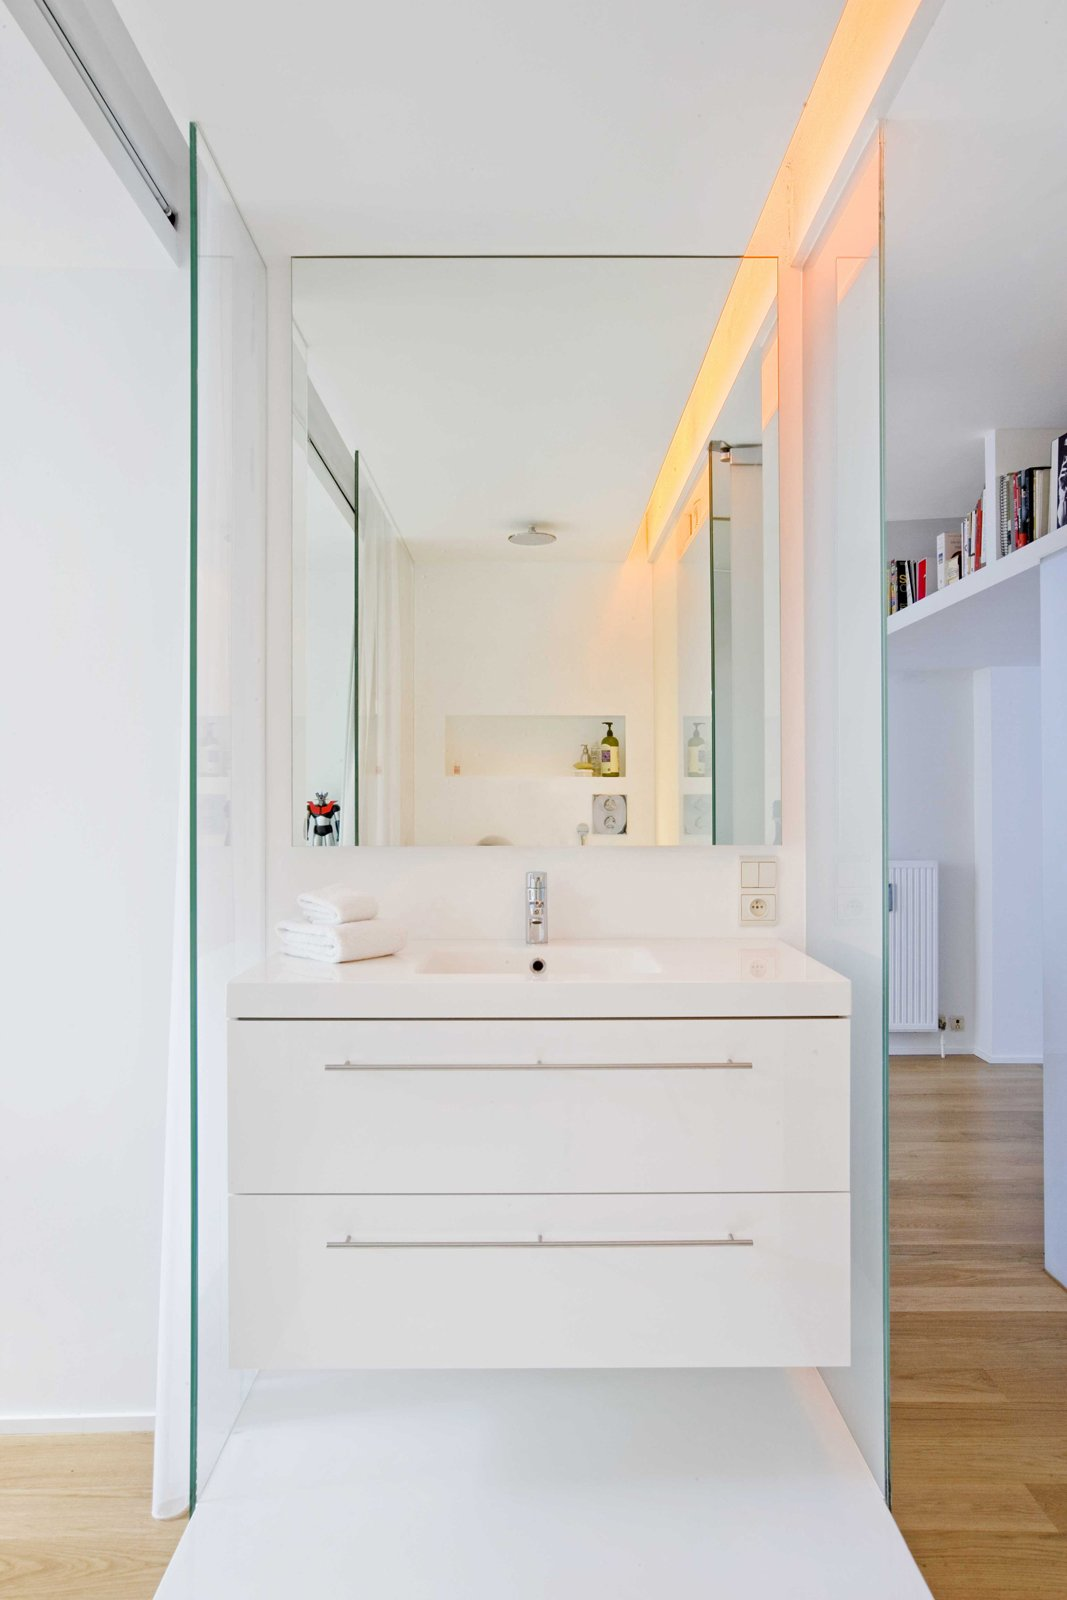 In an unconventional twist, the bathroom is separated into two rooms: a glass-walled shower/sink area shown here and a more private room for the toilet.  Tips for Creating a Well-Designed Bathroom by Alene Workman from Casa H, Brussels